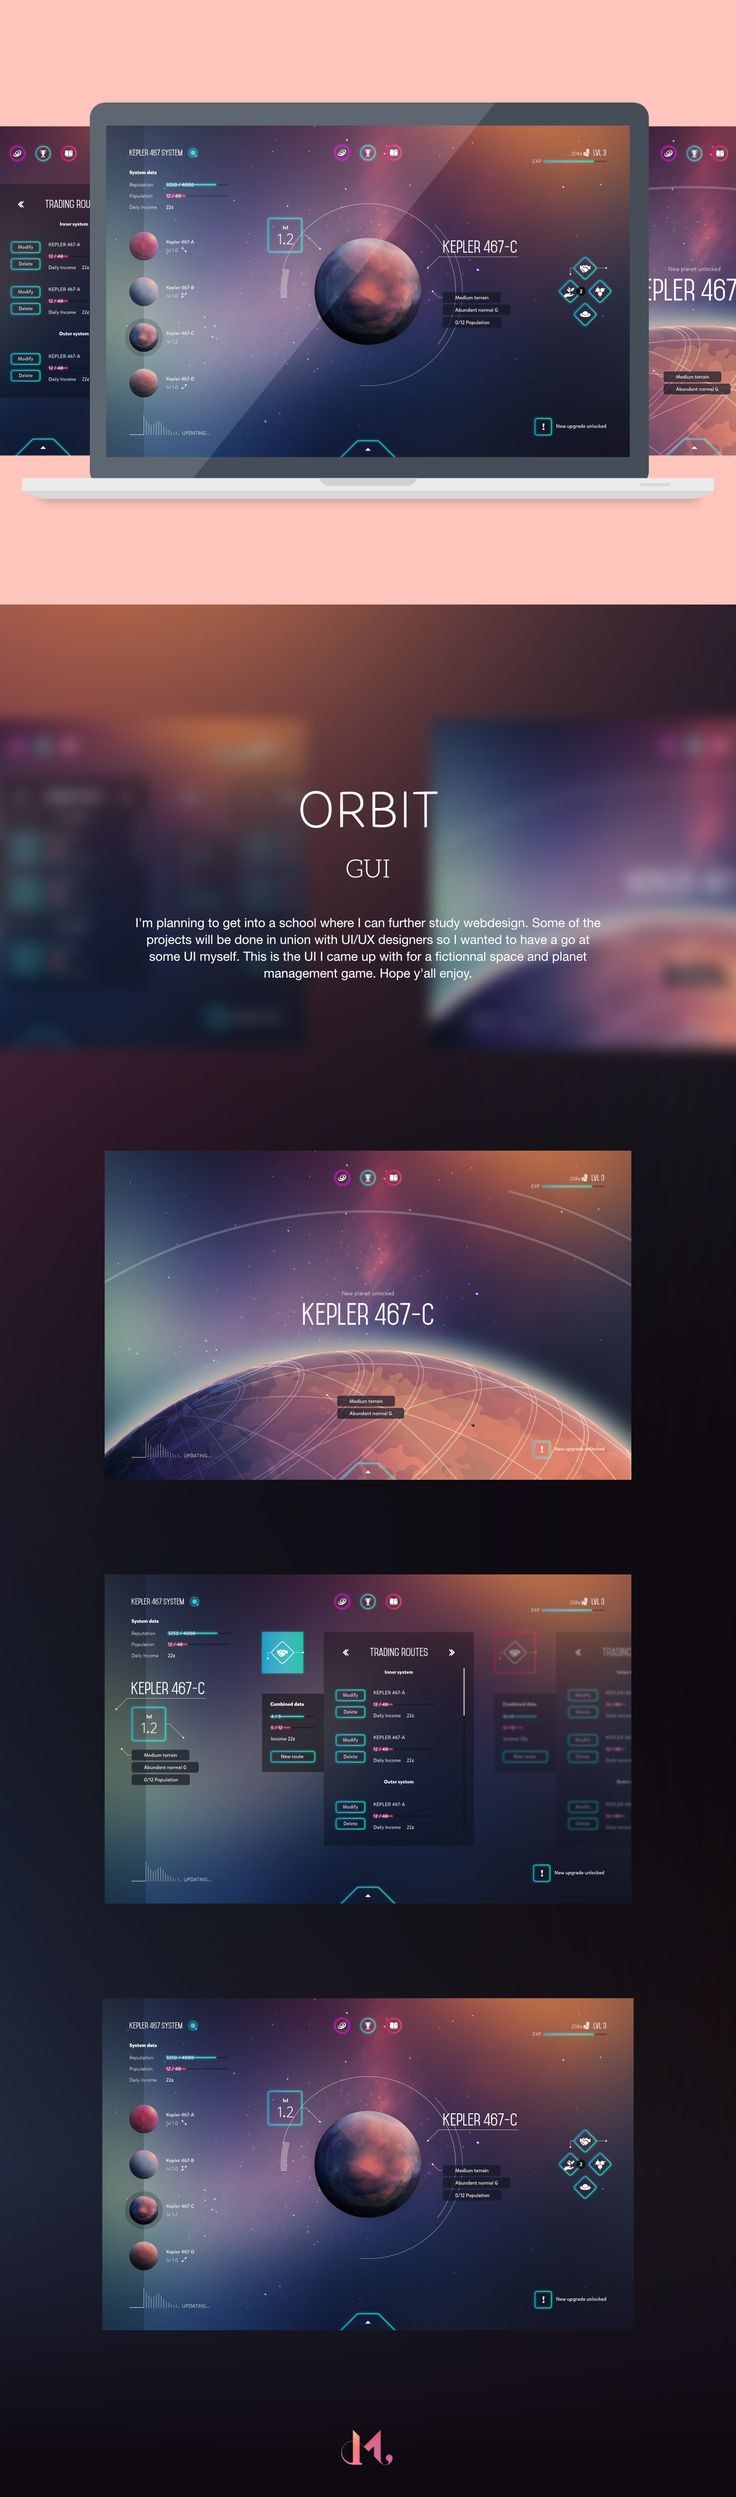 Orbit Space Game UI on Behance